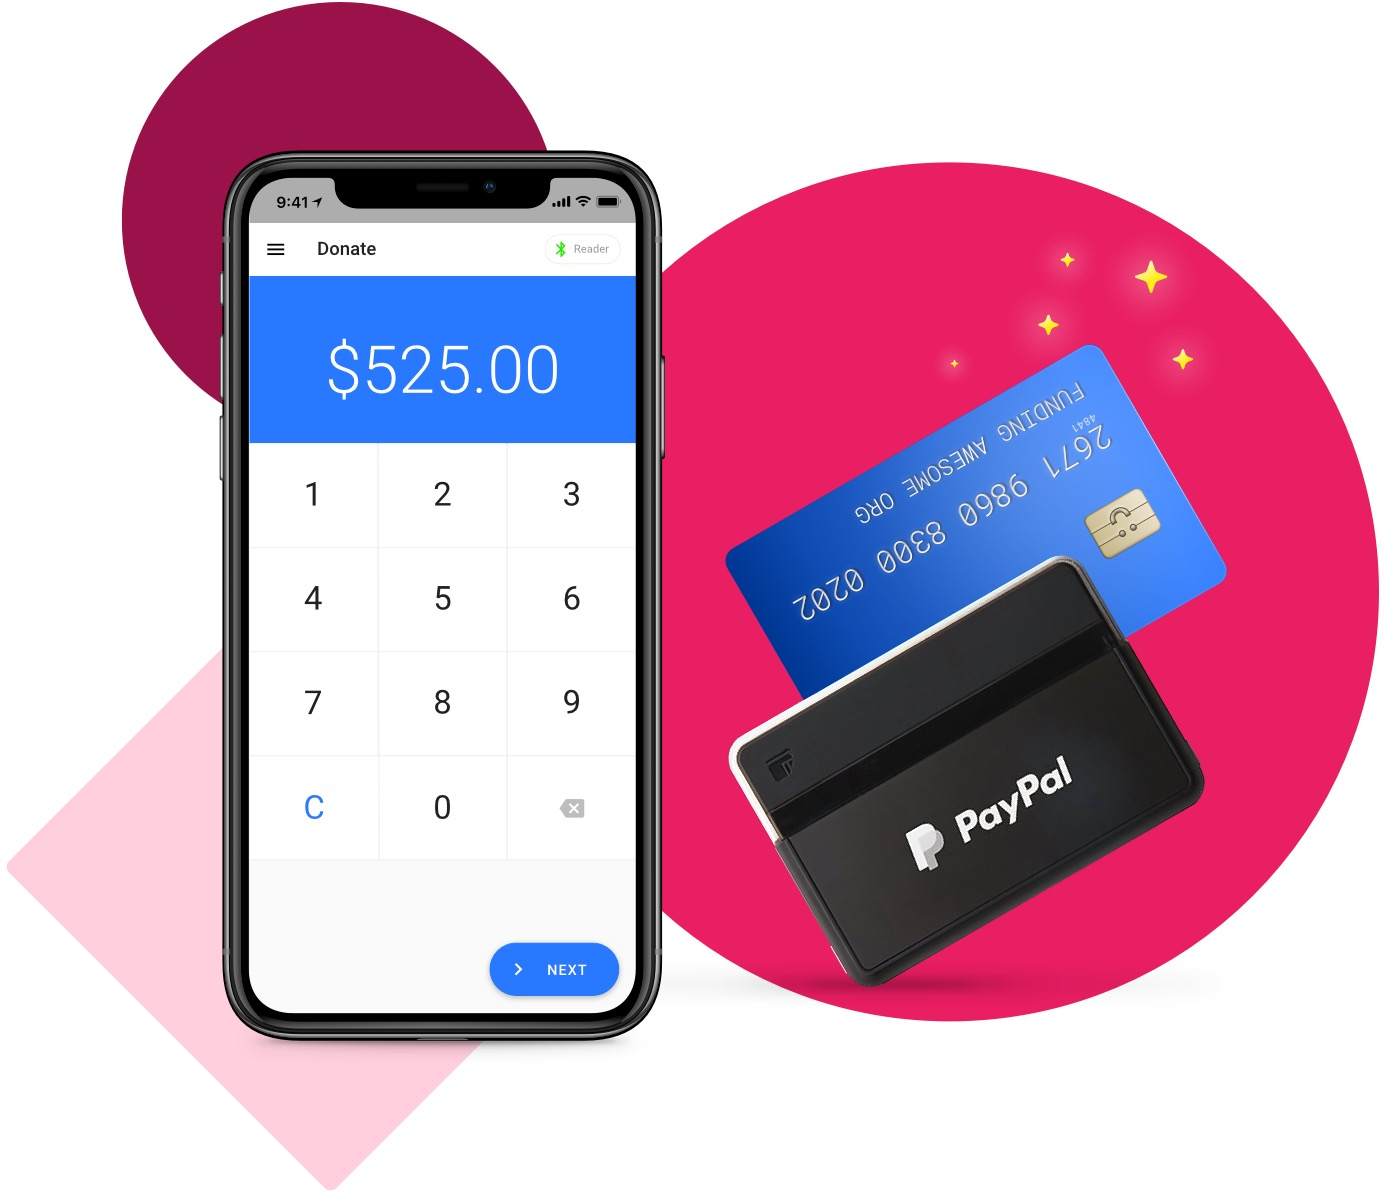 The Funraise App and paypal card reader swiping a card